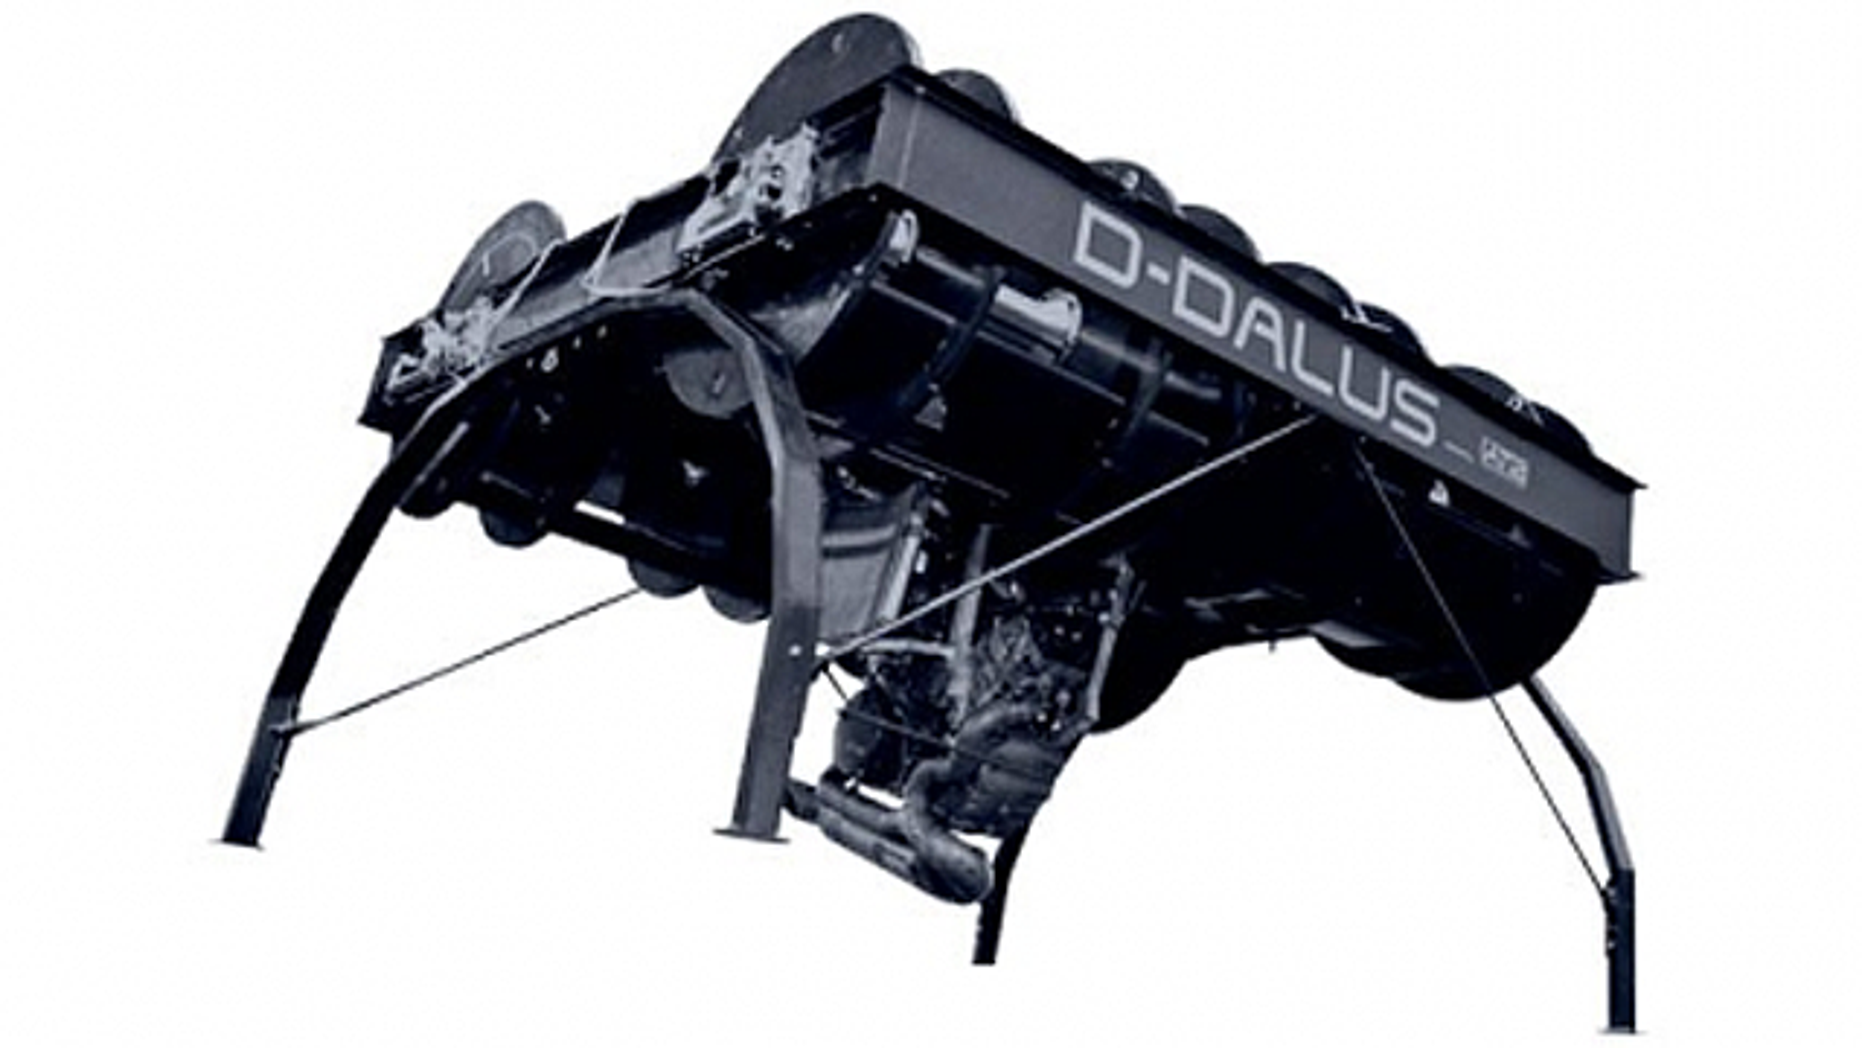 The D Dalus system uses four contra-rotating turbines for propulsion, rather than wings, rotating blades and jet engines.